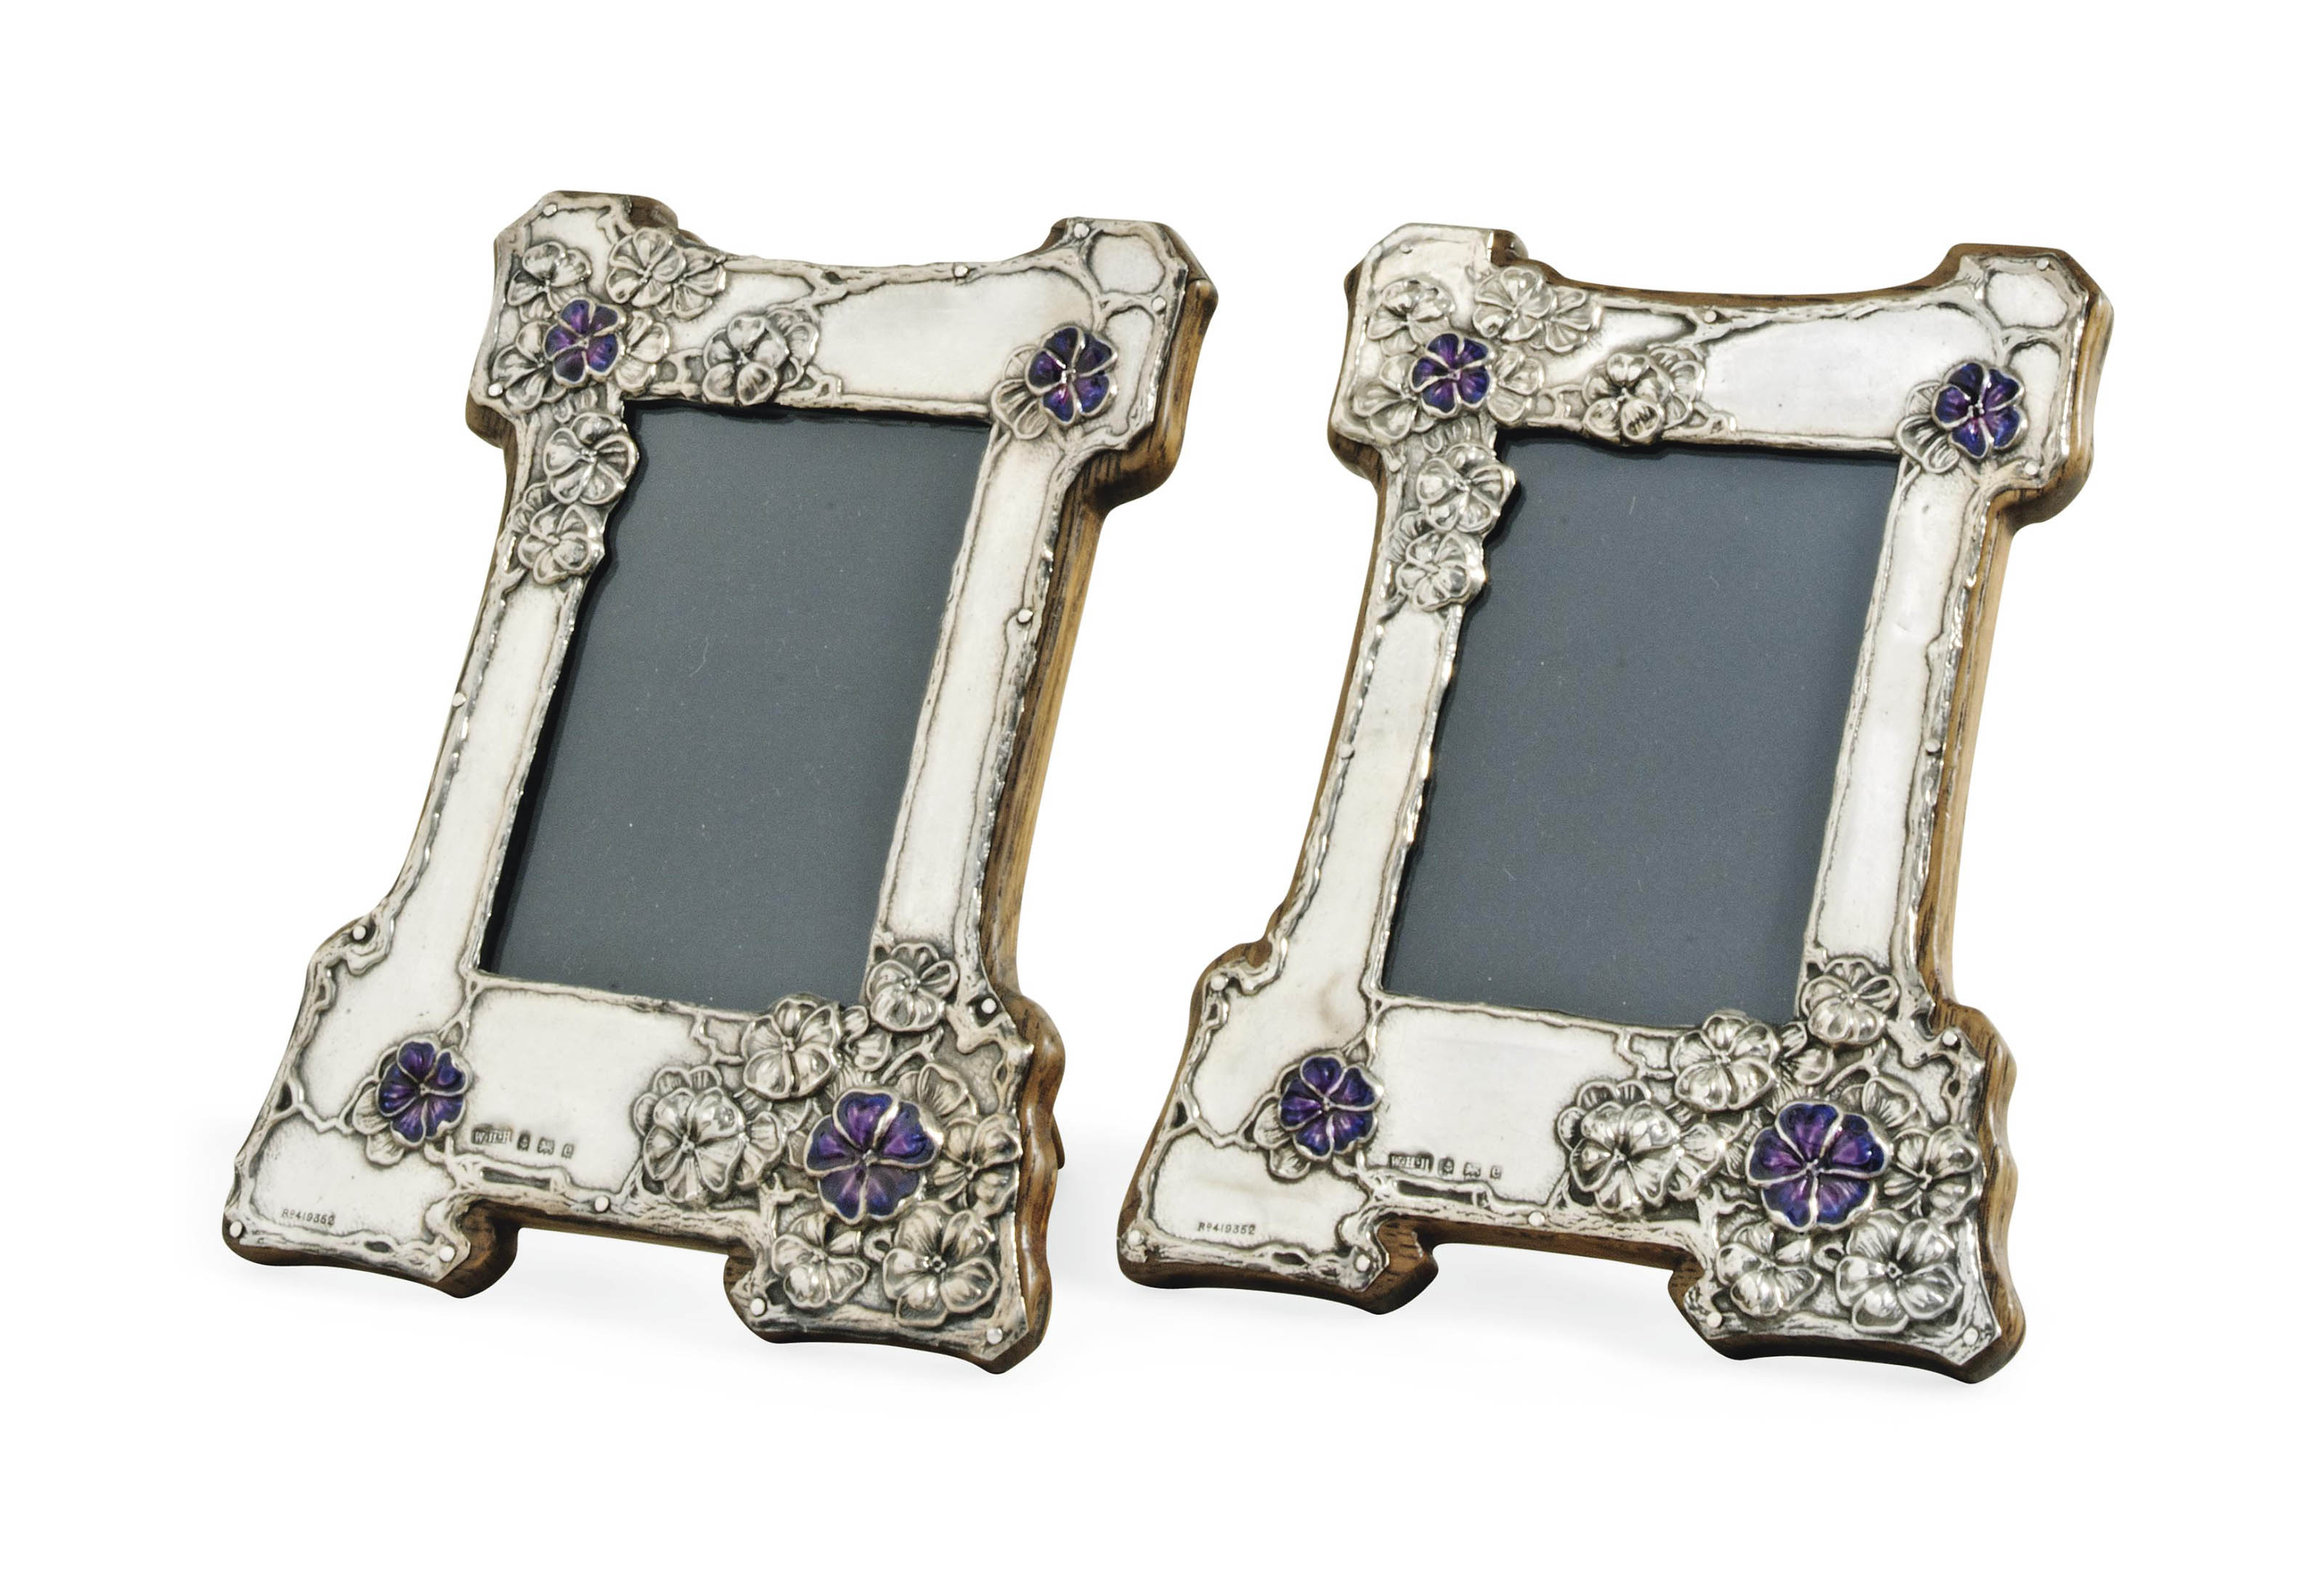 A PAIR OF W.H. HASLER SILVER A